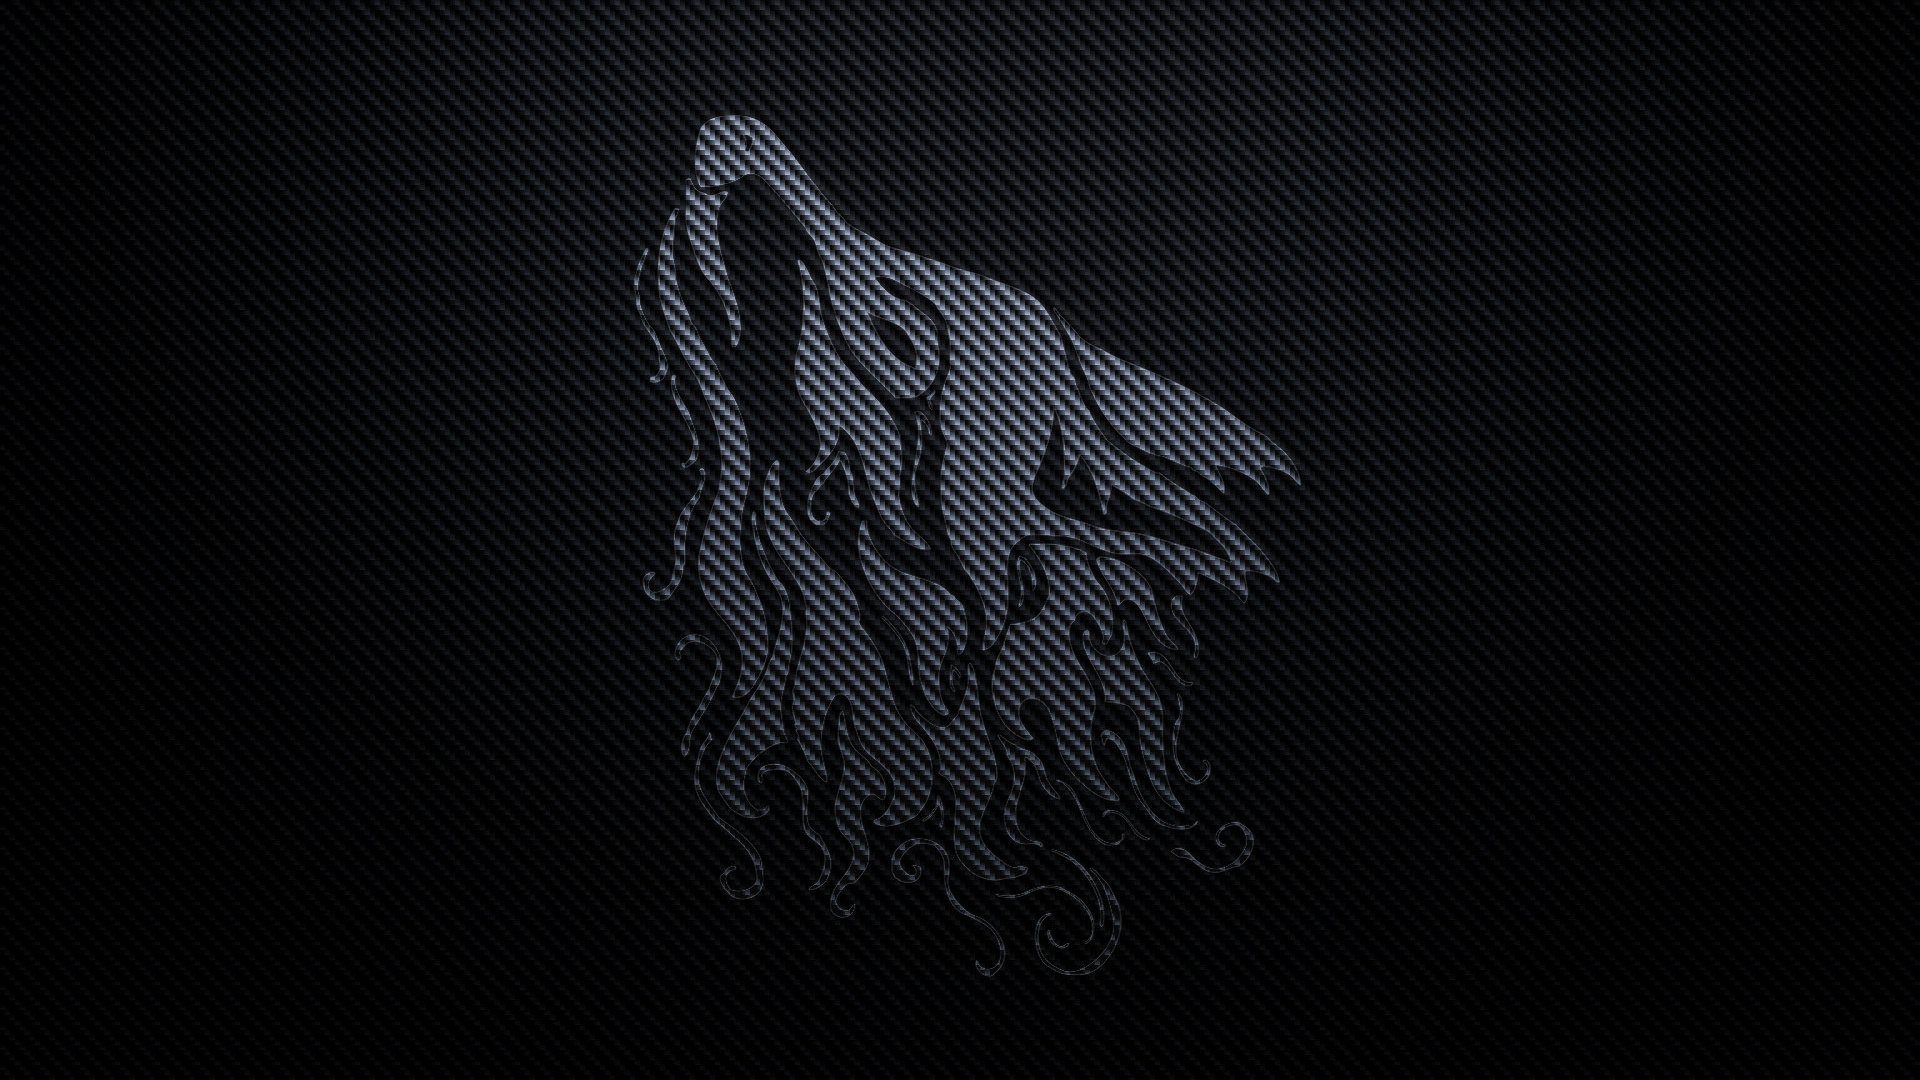 carbon wallpapers hd android apps on google play 1920x1080